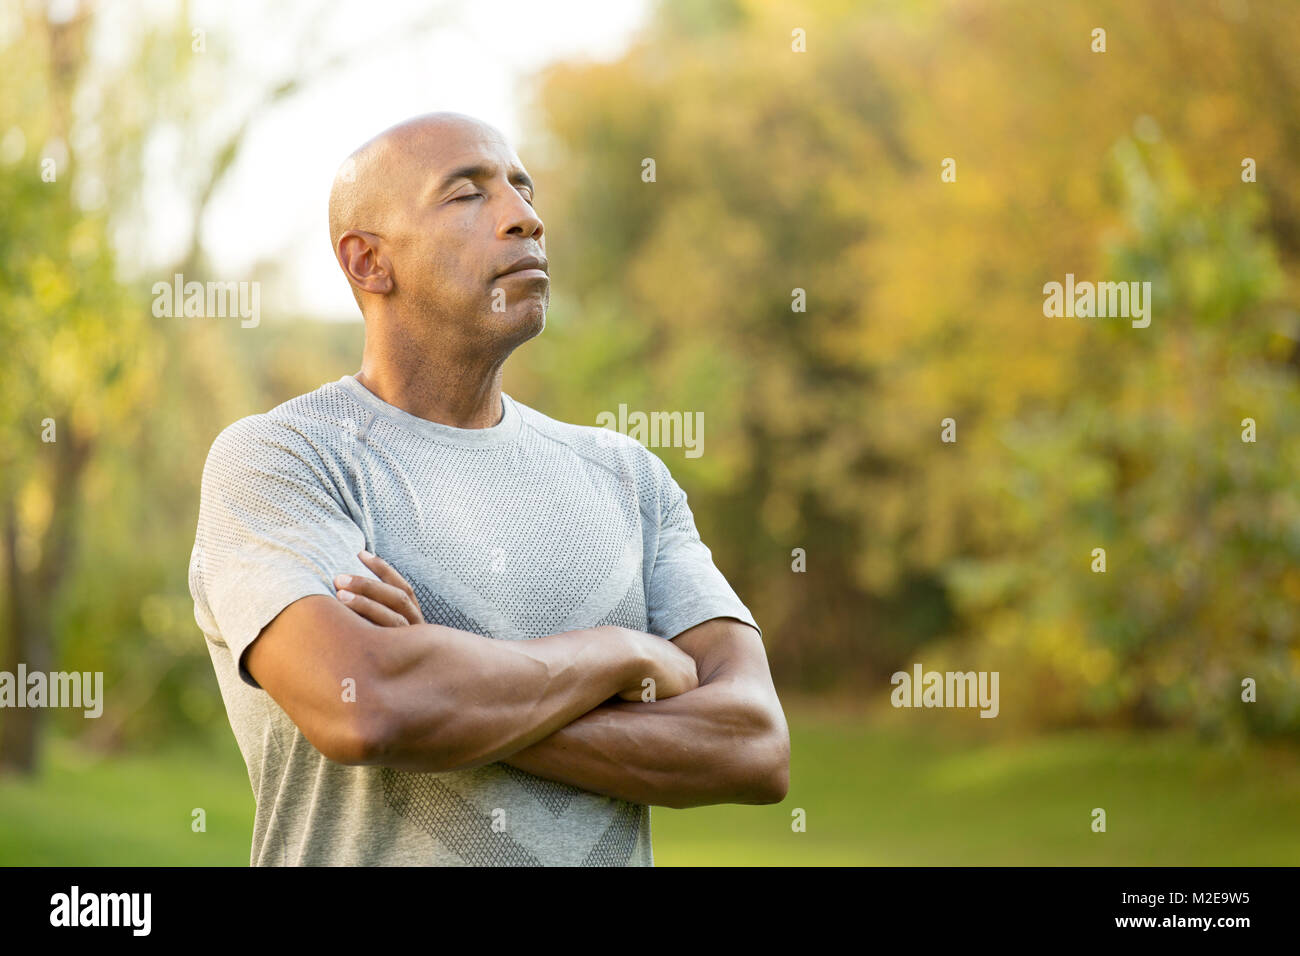 Fit African American man. - Stock Image